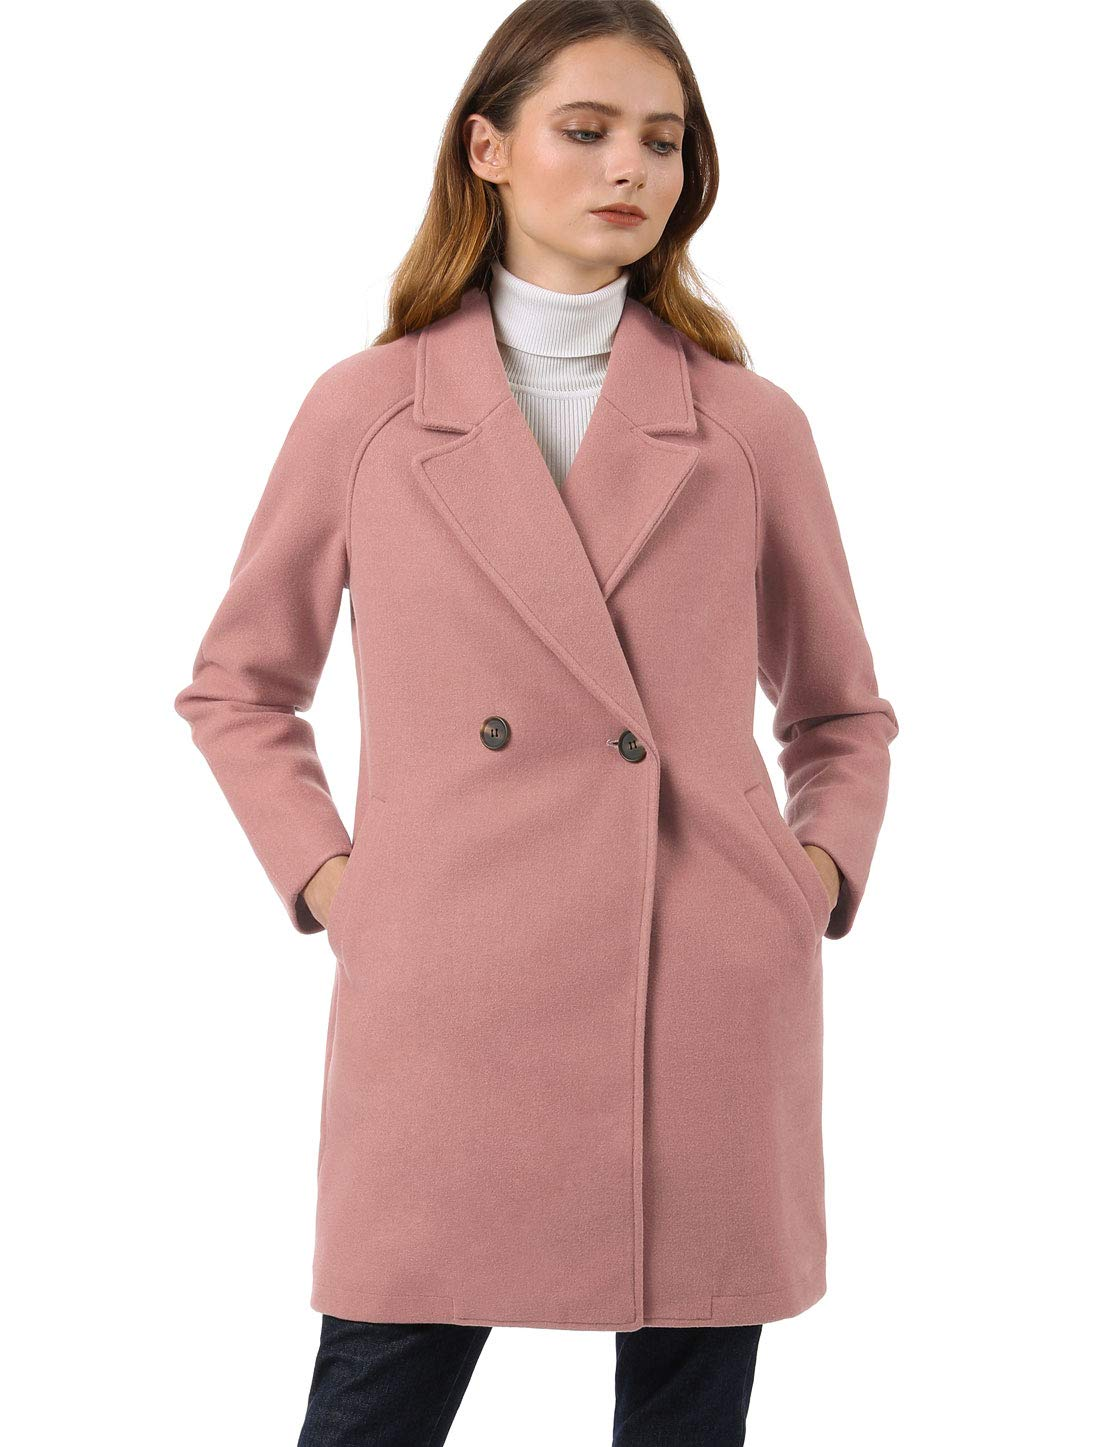 Allegra K Women's Notched Lapel Double Breasted Raglan Winter Coats Rose Pink S (US 6) by Allegra K